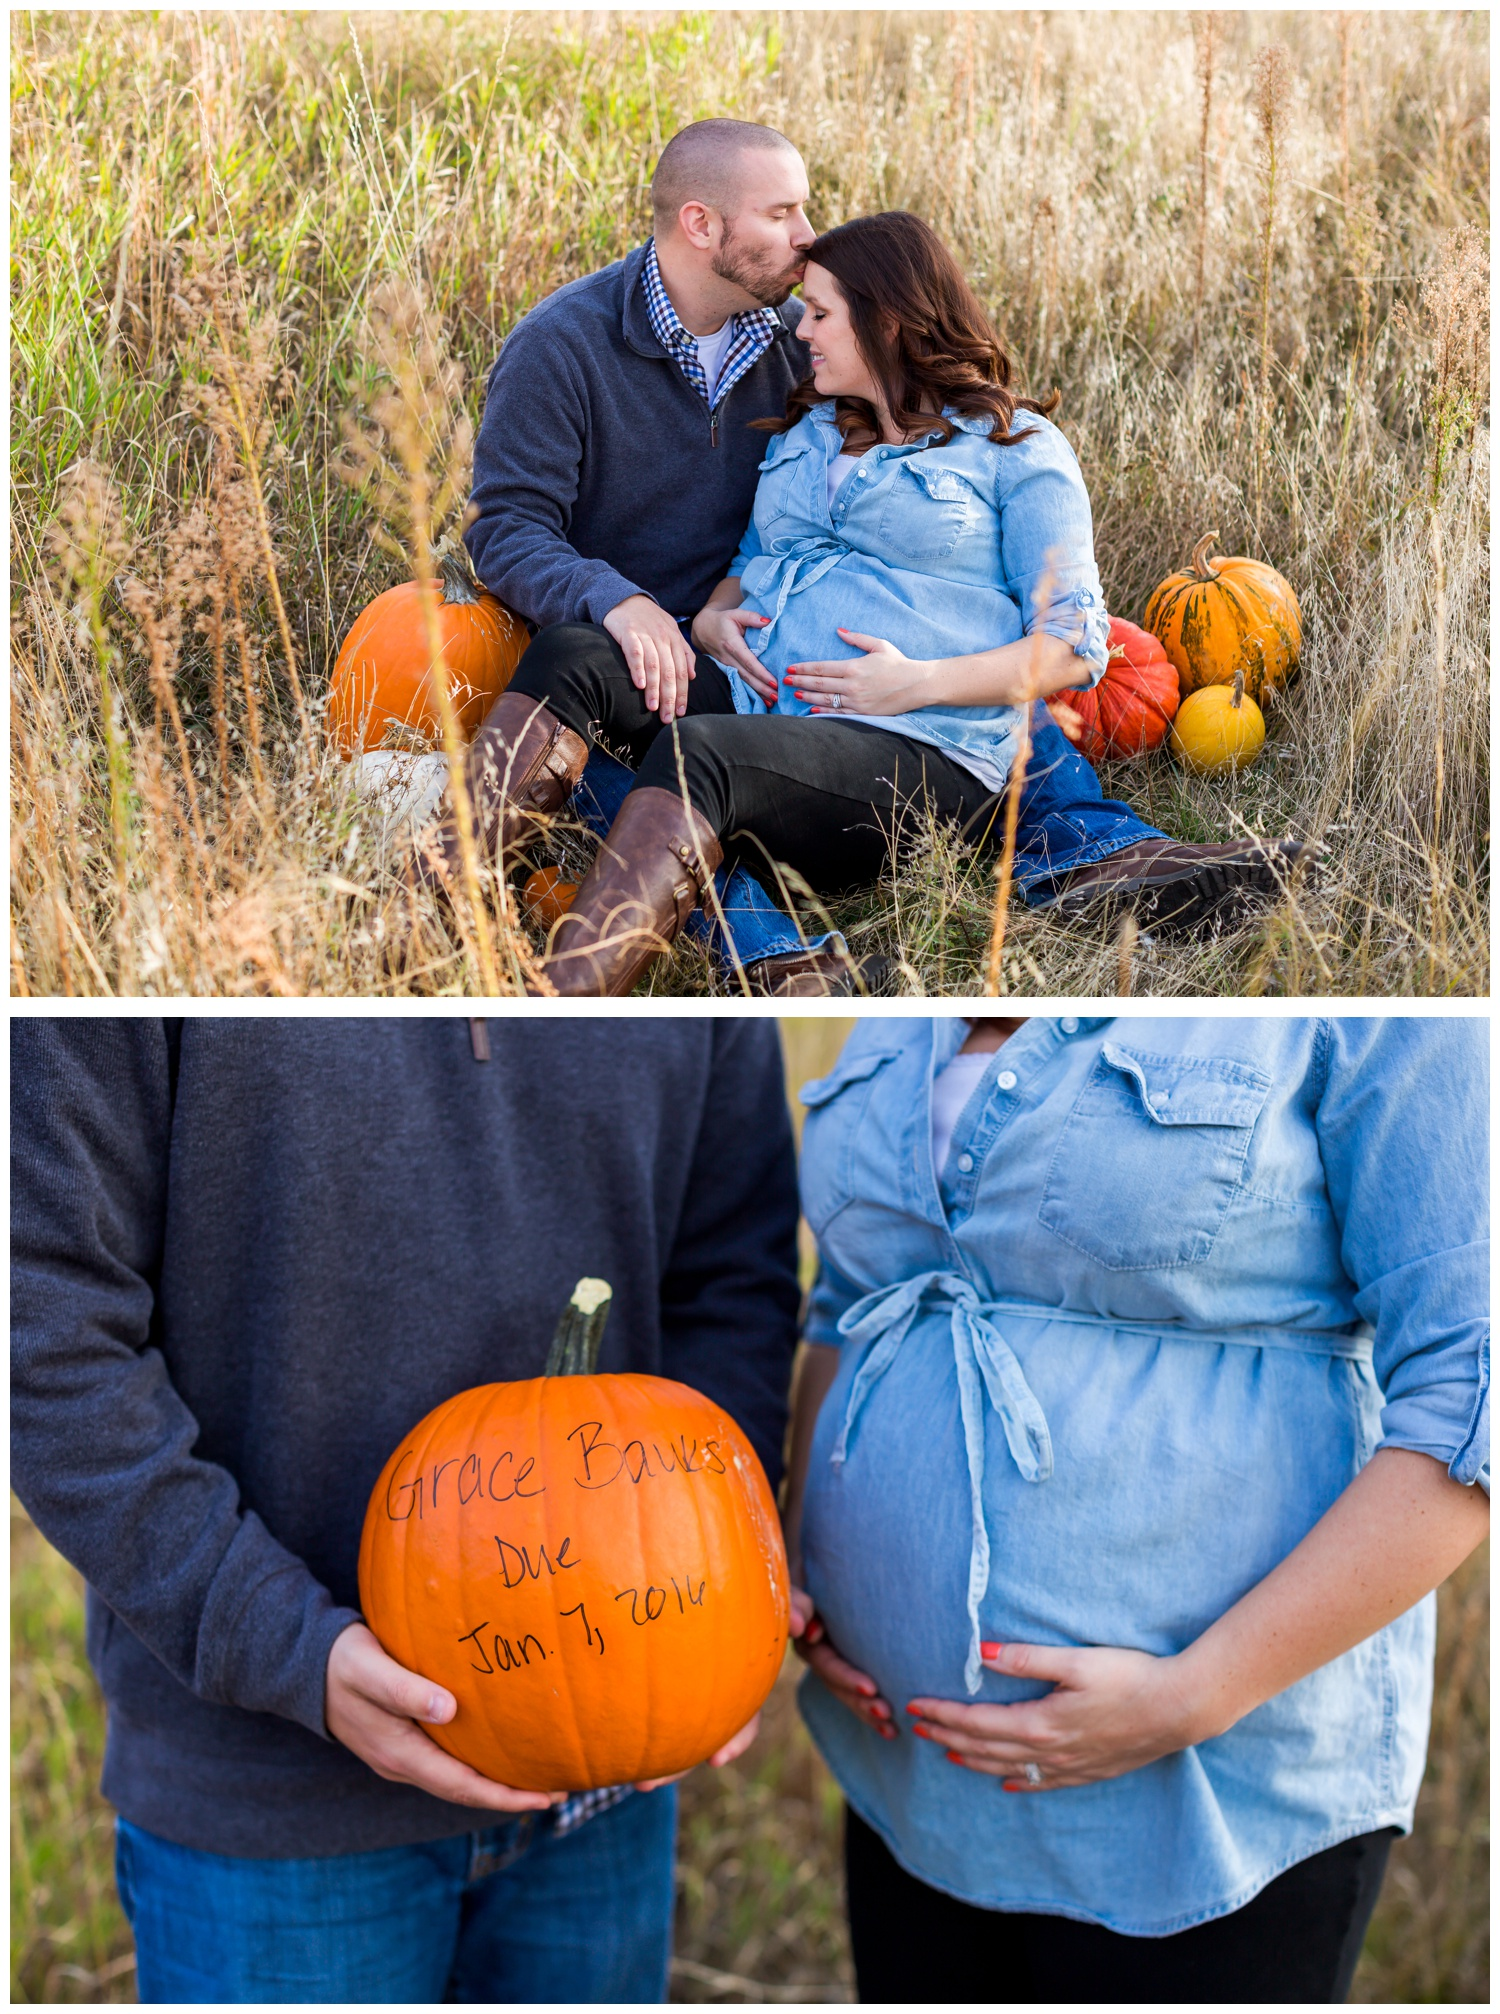 Fort Collins Maternity Photography01.jpg